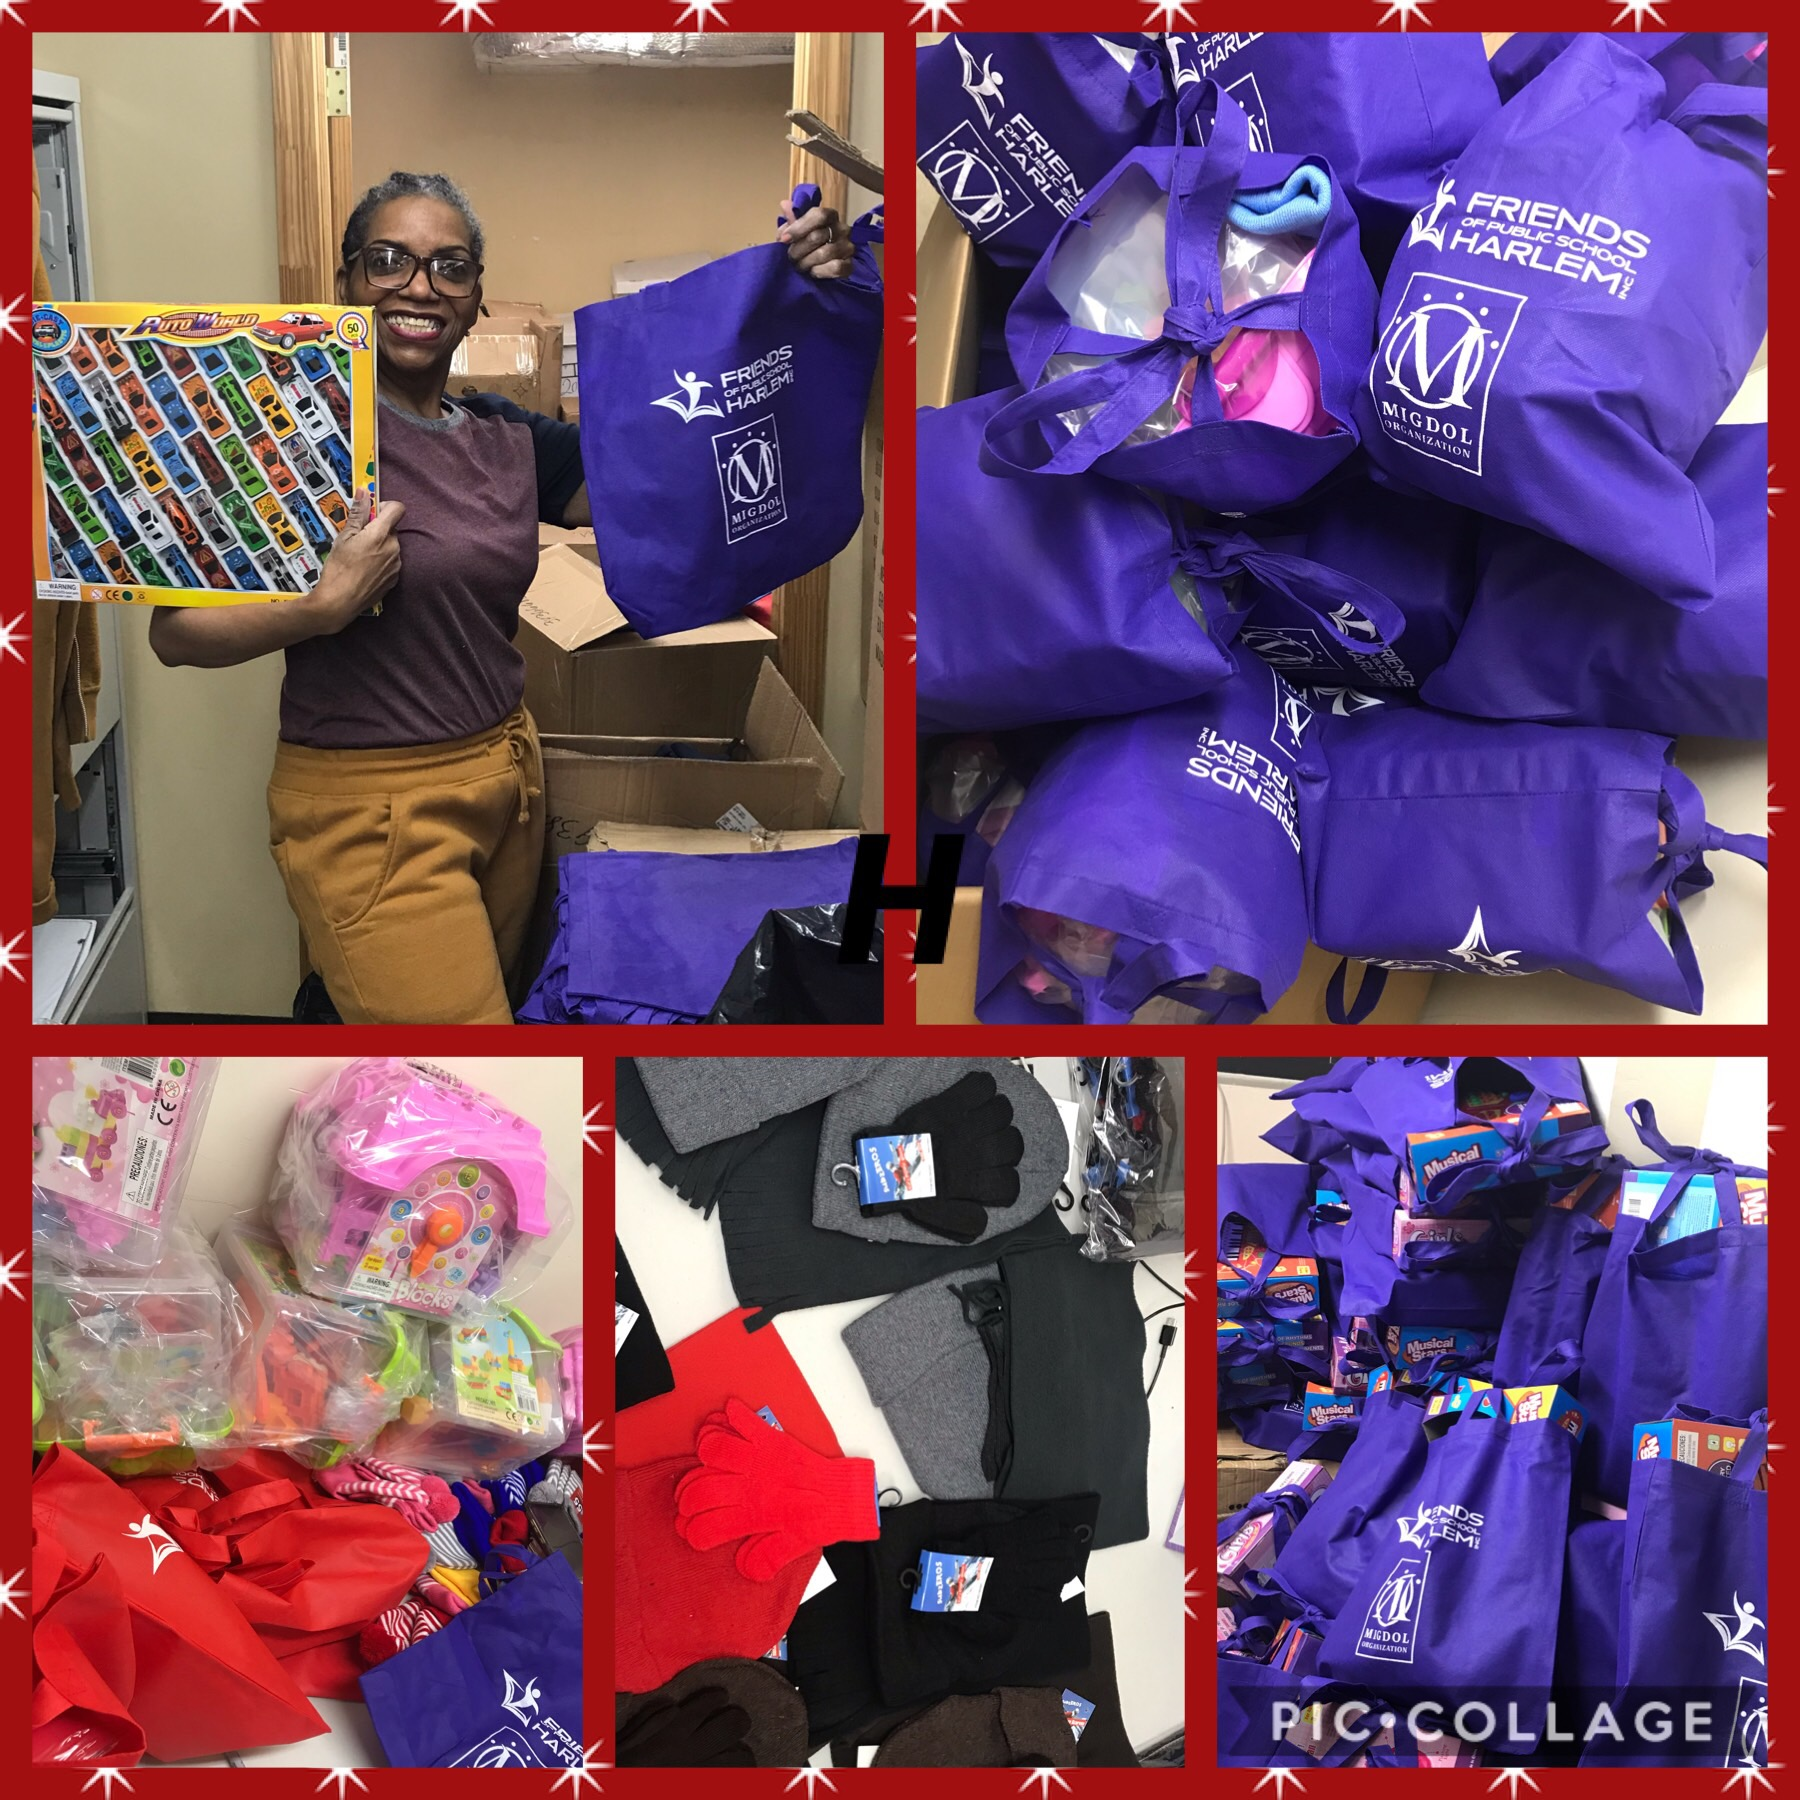 We're busy packing gift bags for the events at the Friends of Public School Harlem office!